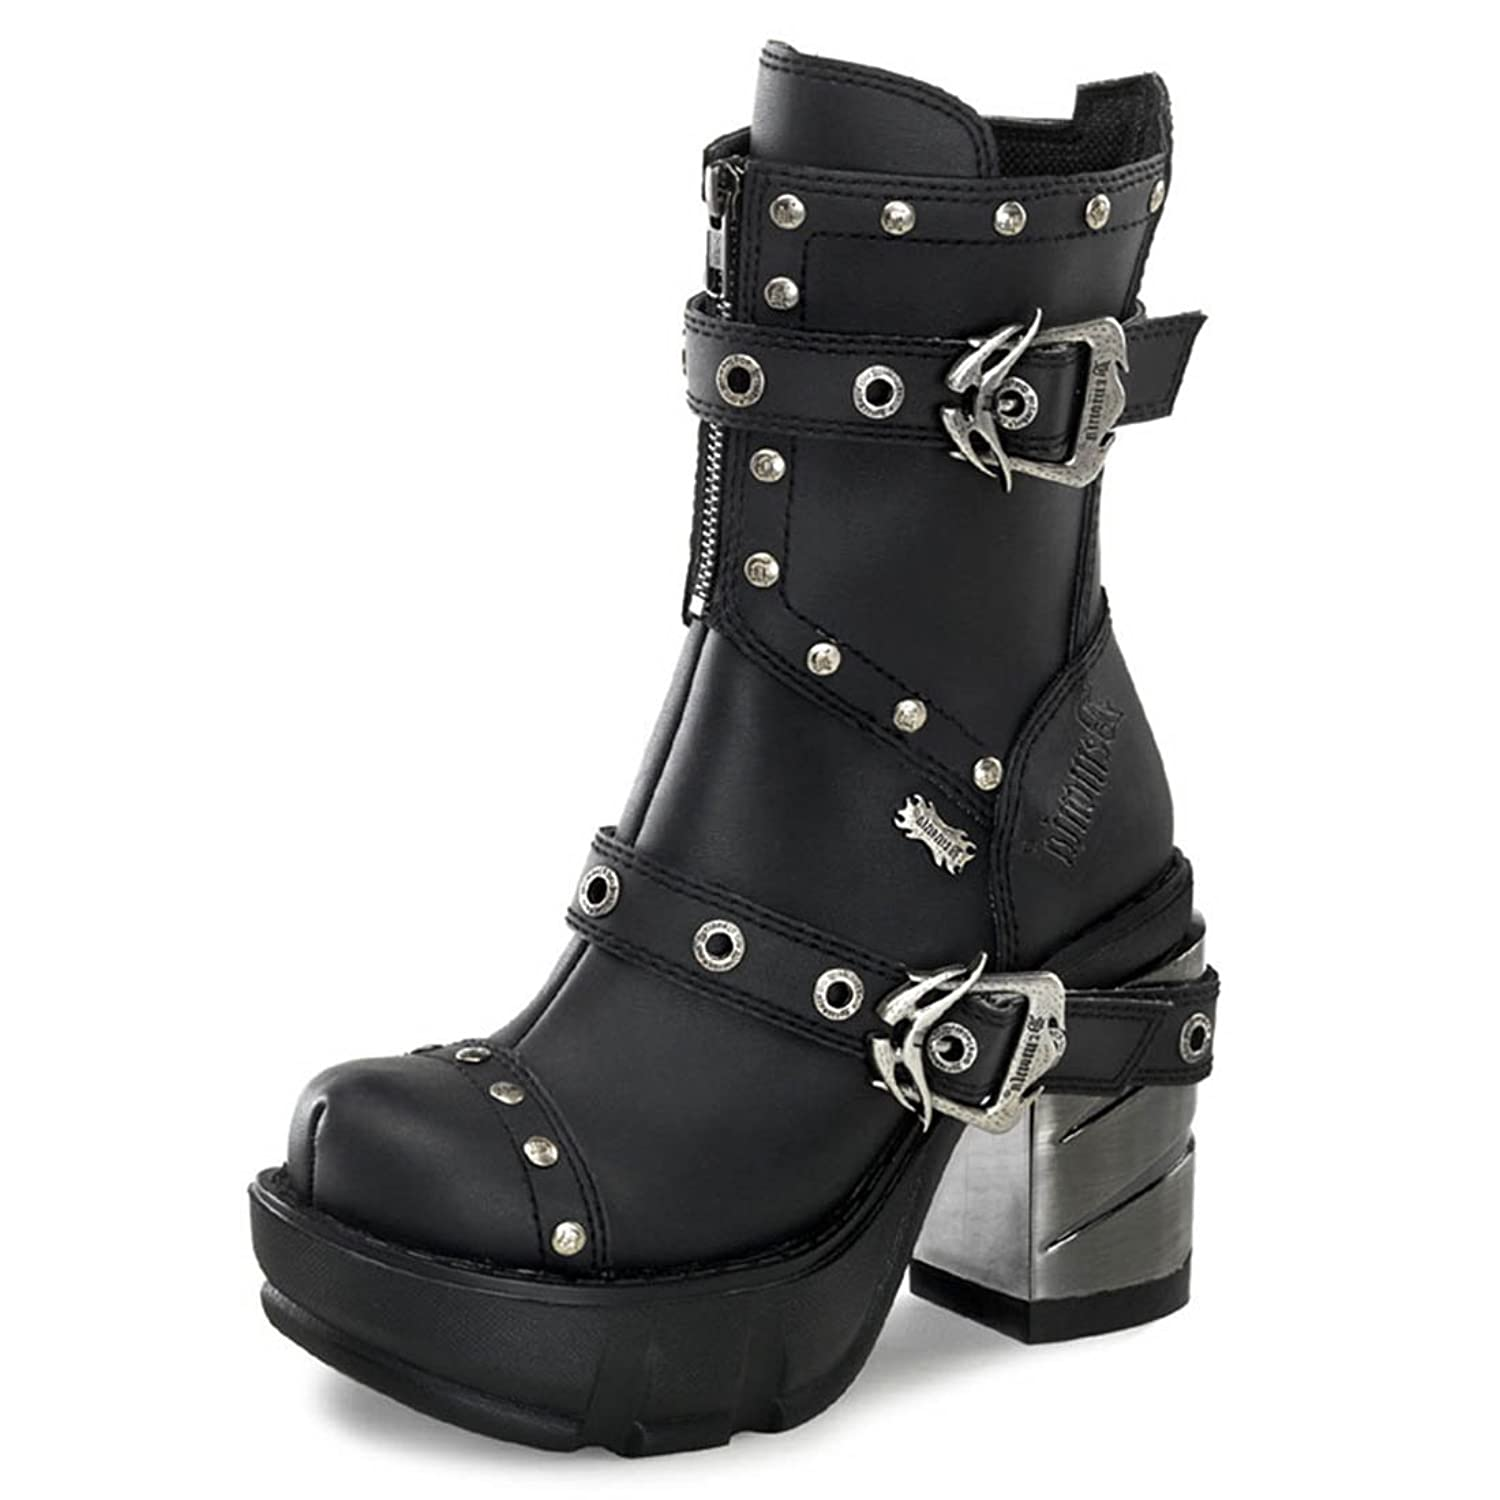 Womens Sizing Vegan Black Studded Ankle Boots with Buckle and 3.5 Inch ABS Heel